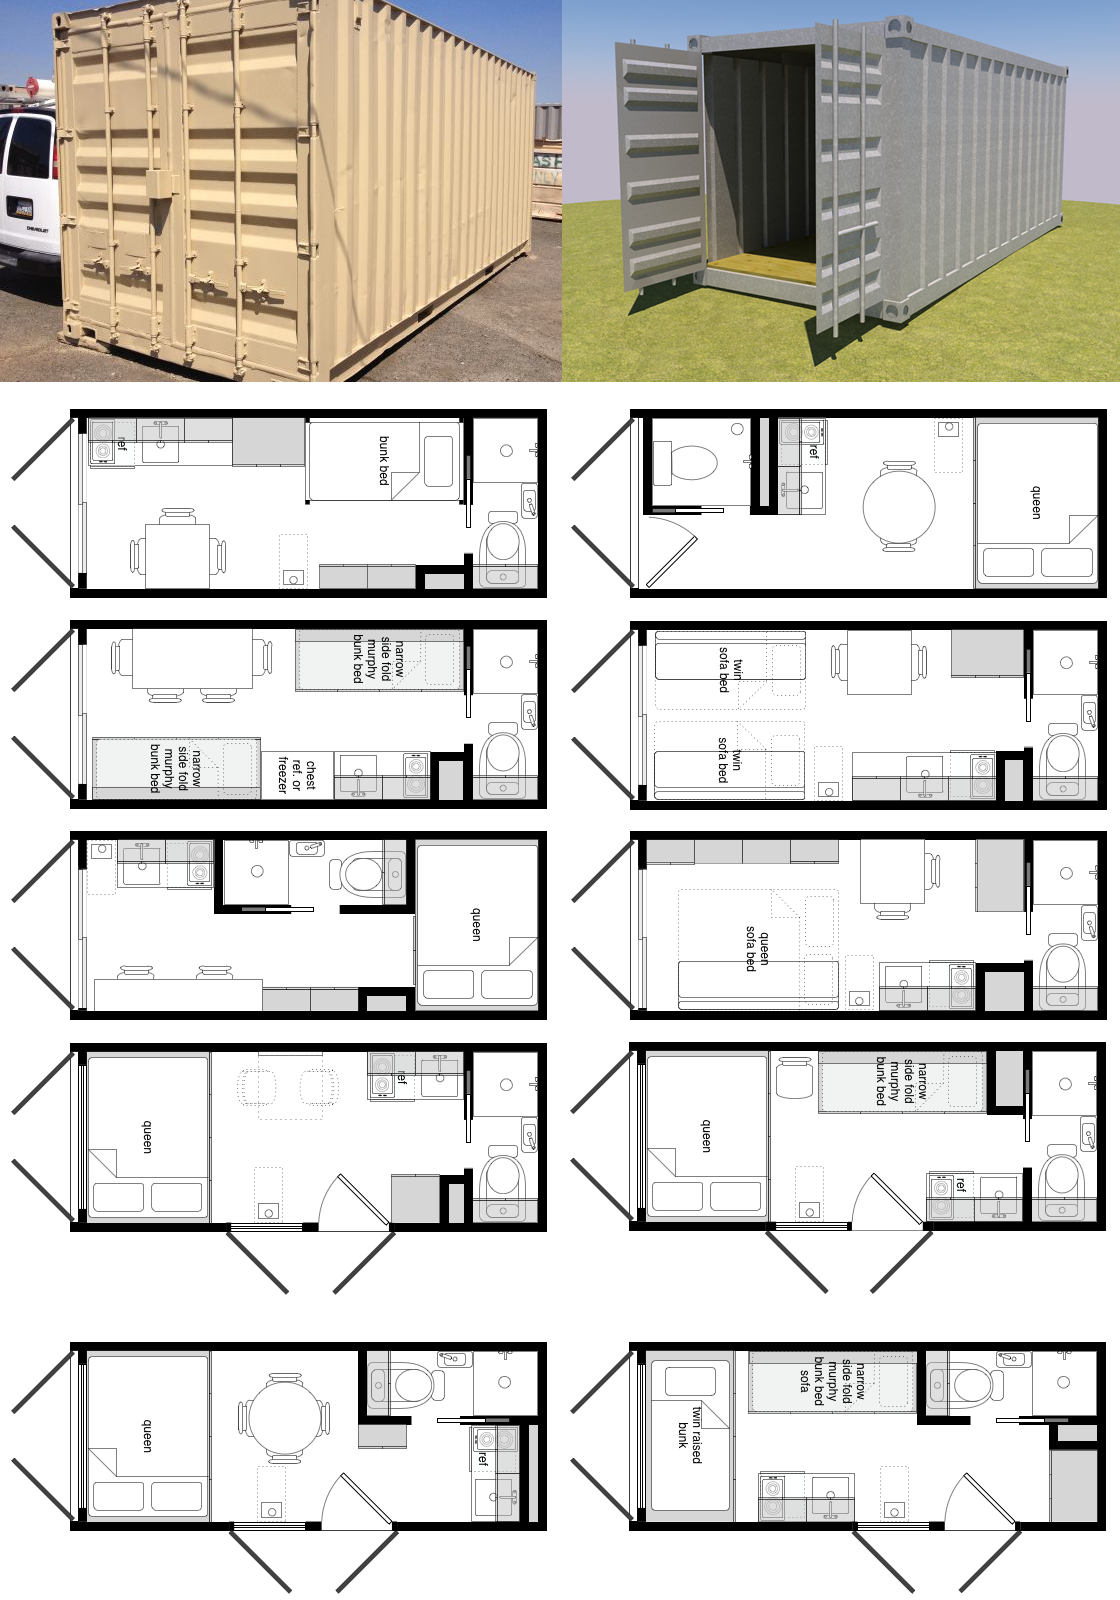 Shipping container home floor plans 20 foot shipping container floor plan brainstorm - Sea container home designs ideas ...